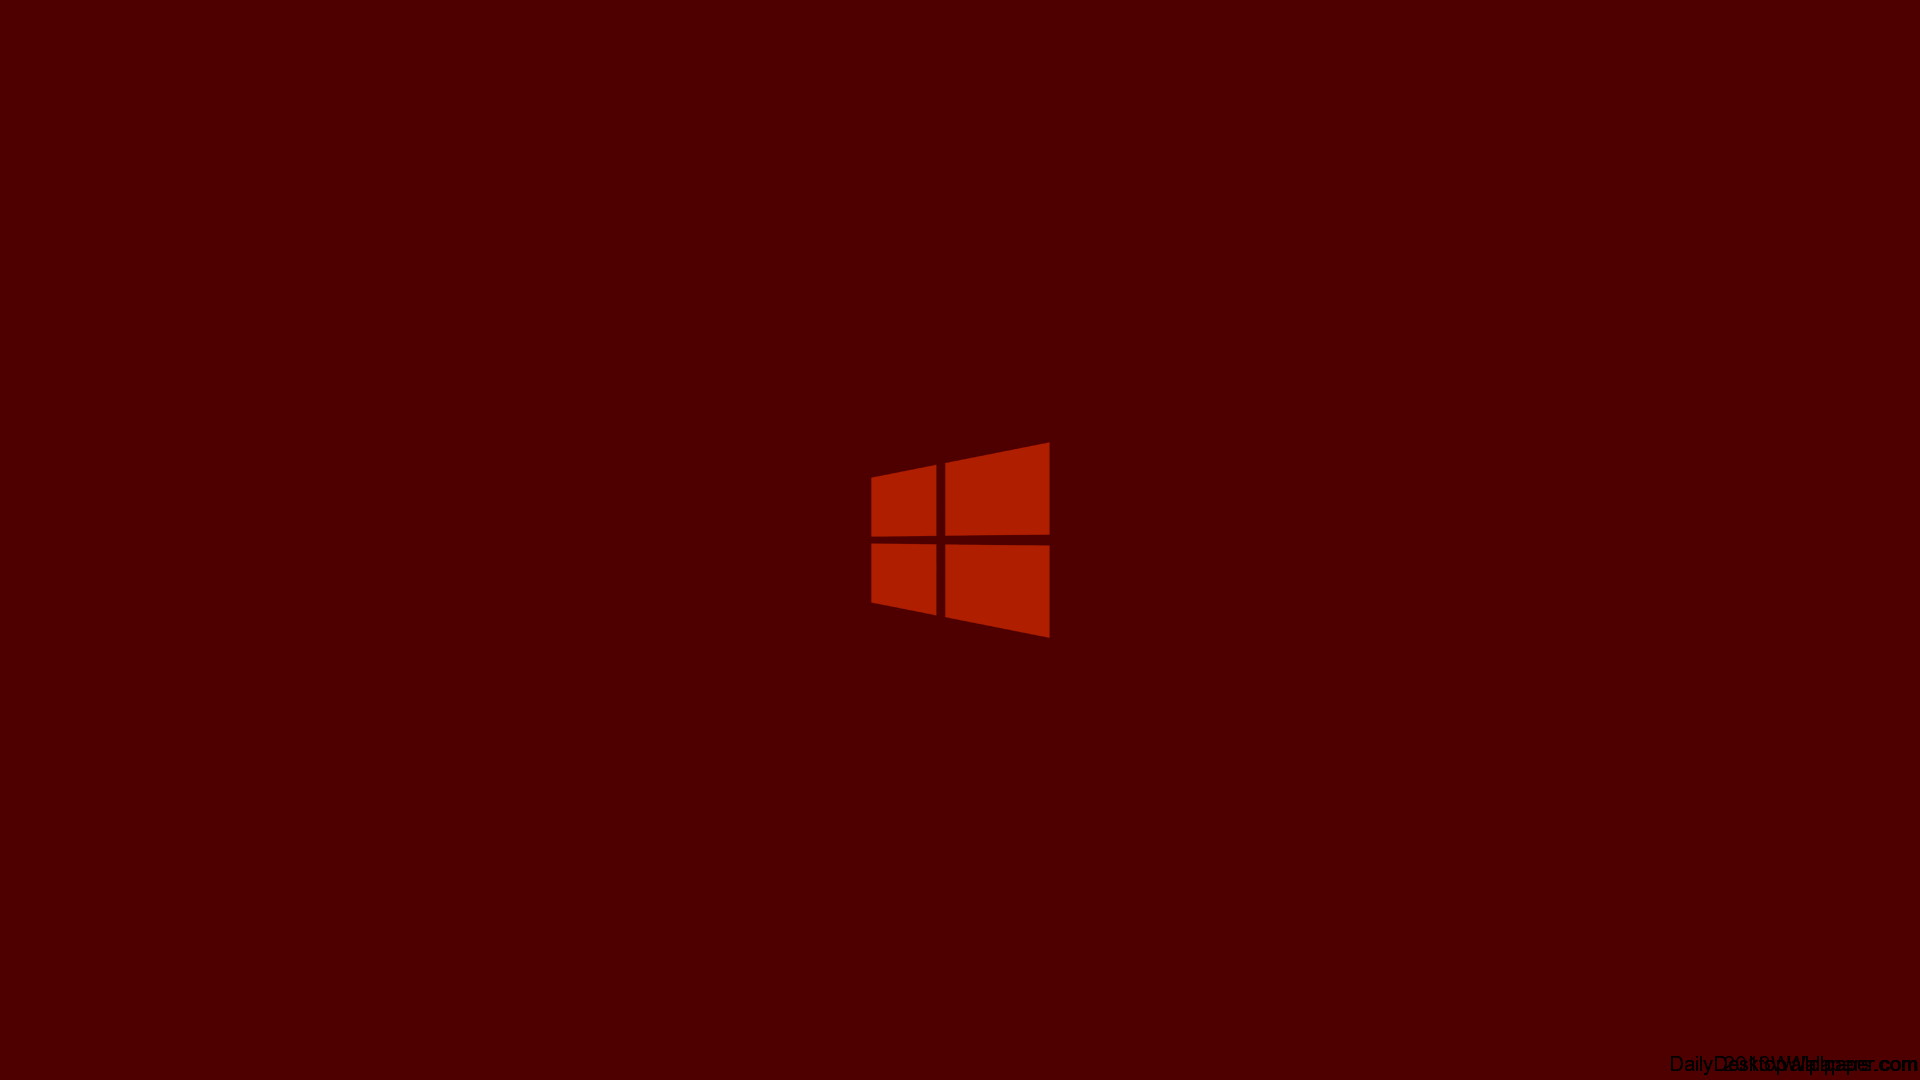 Orange Windows 8 Logo Wallpaper